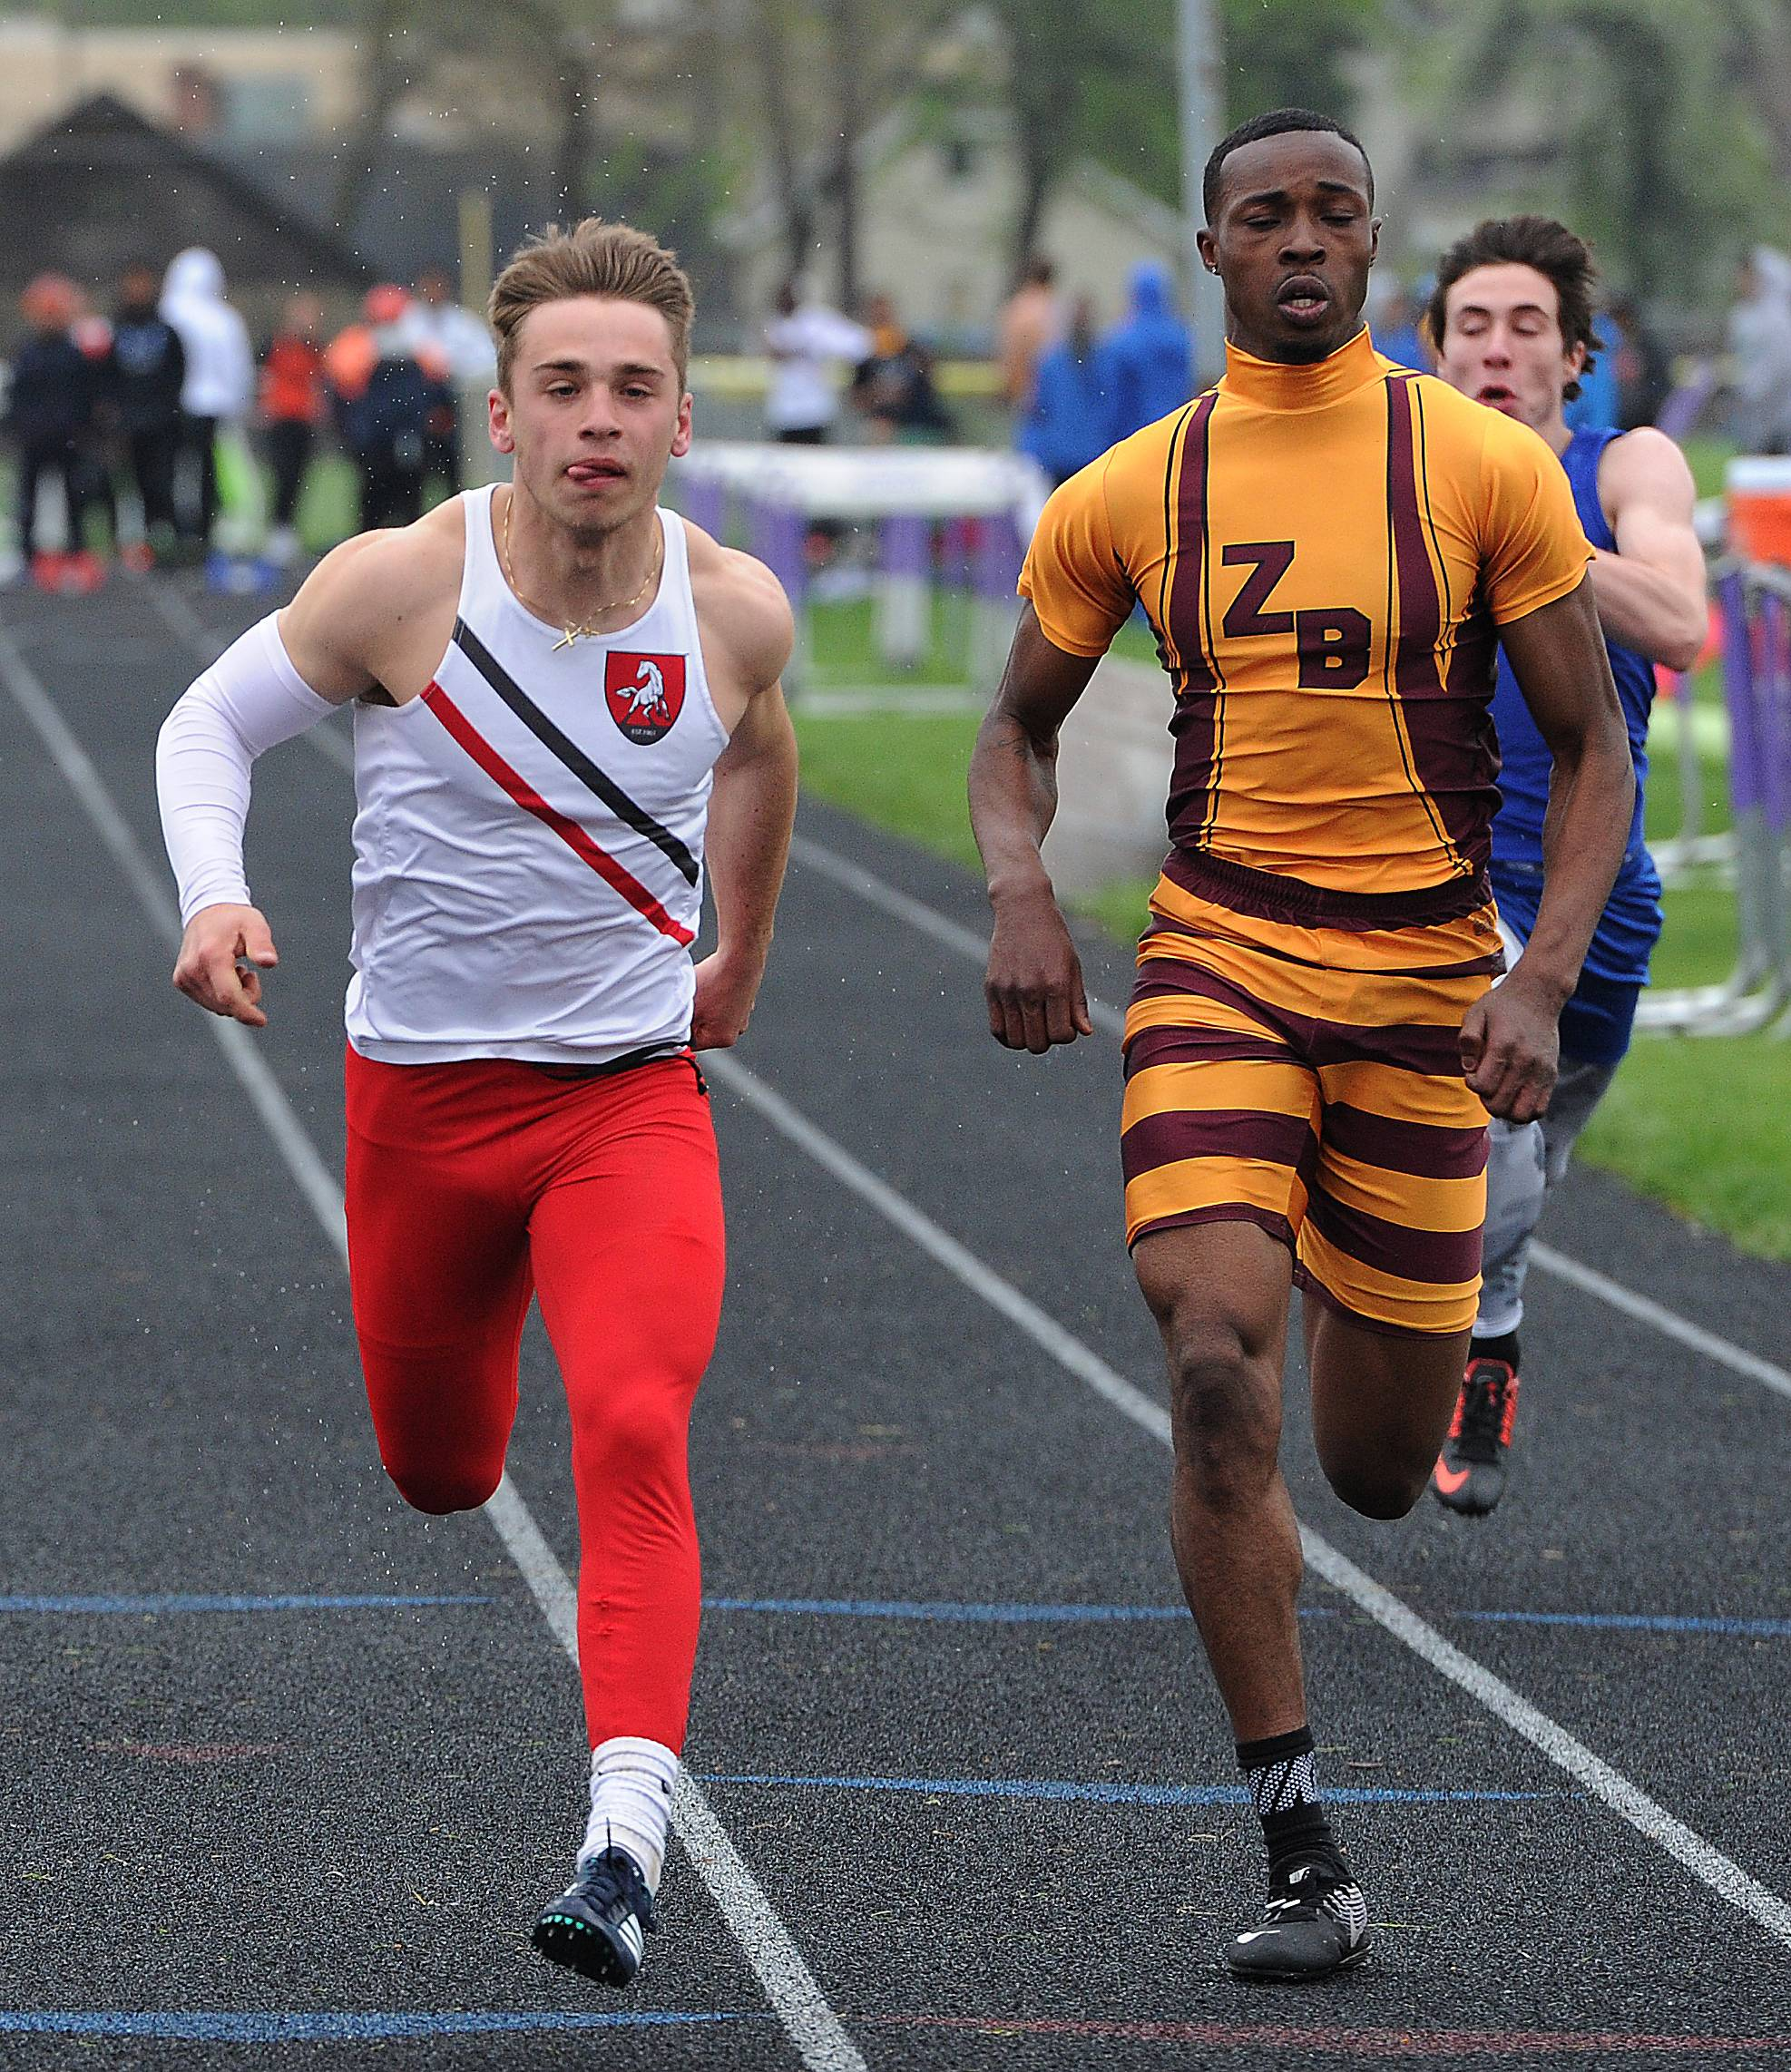 Mundelein's Bobby Nuzzo, left, wins the 100-meter dash just ahead of Zion-Benton's Cortez Sawyer in the North Suburban Conference meet Saturday in Waukegan.